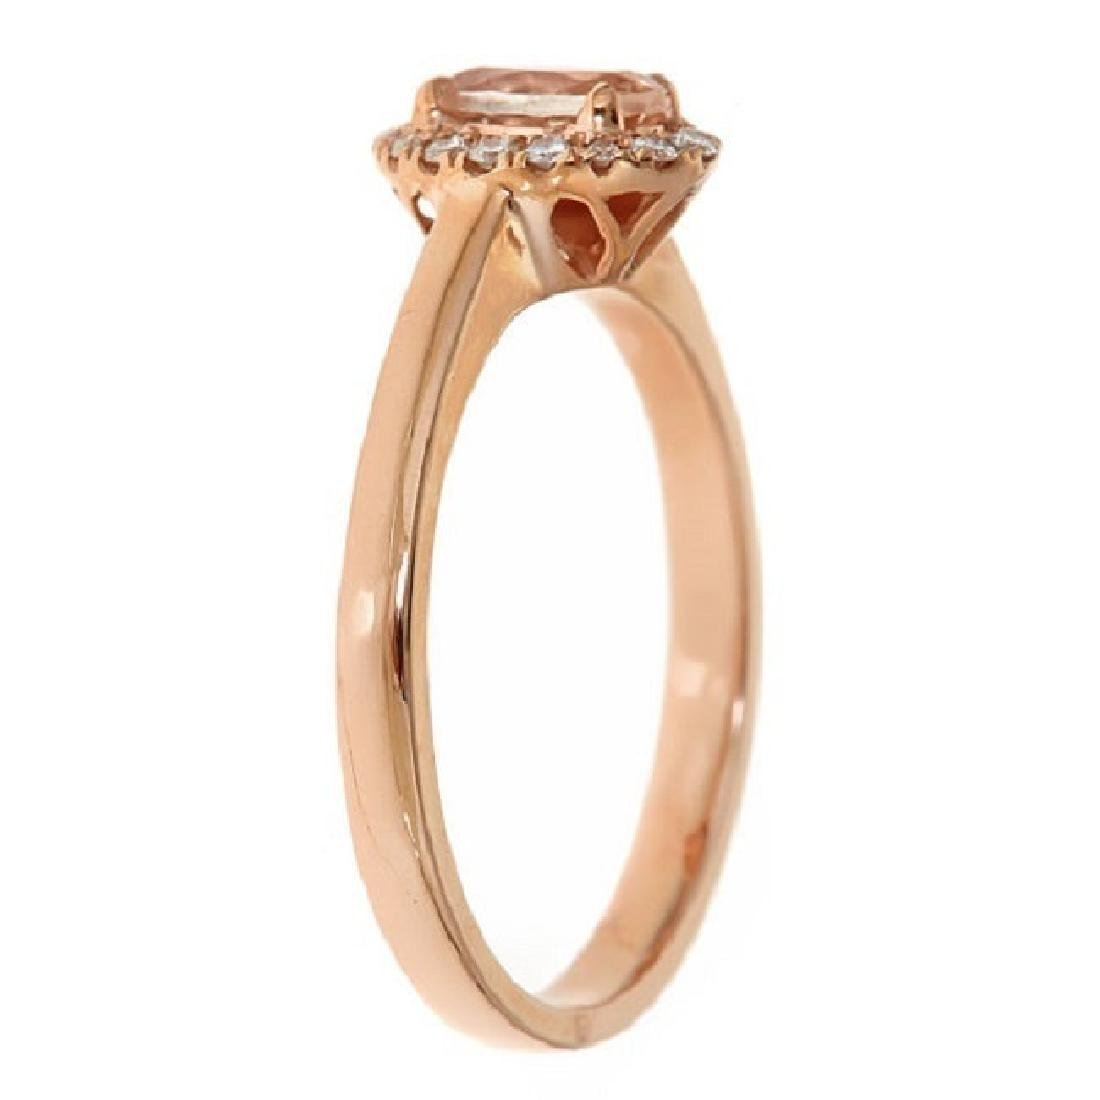 0.43 ctw Morganite and Diamond Ring - 10KT Rose Gold - 2